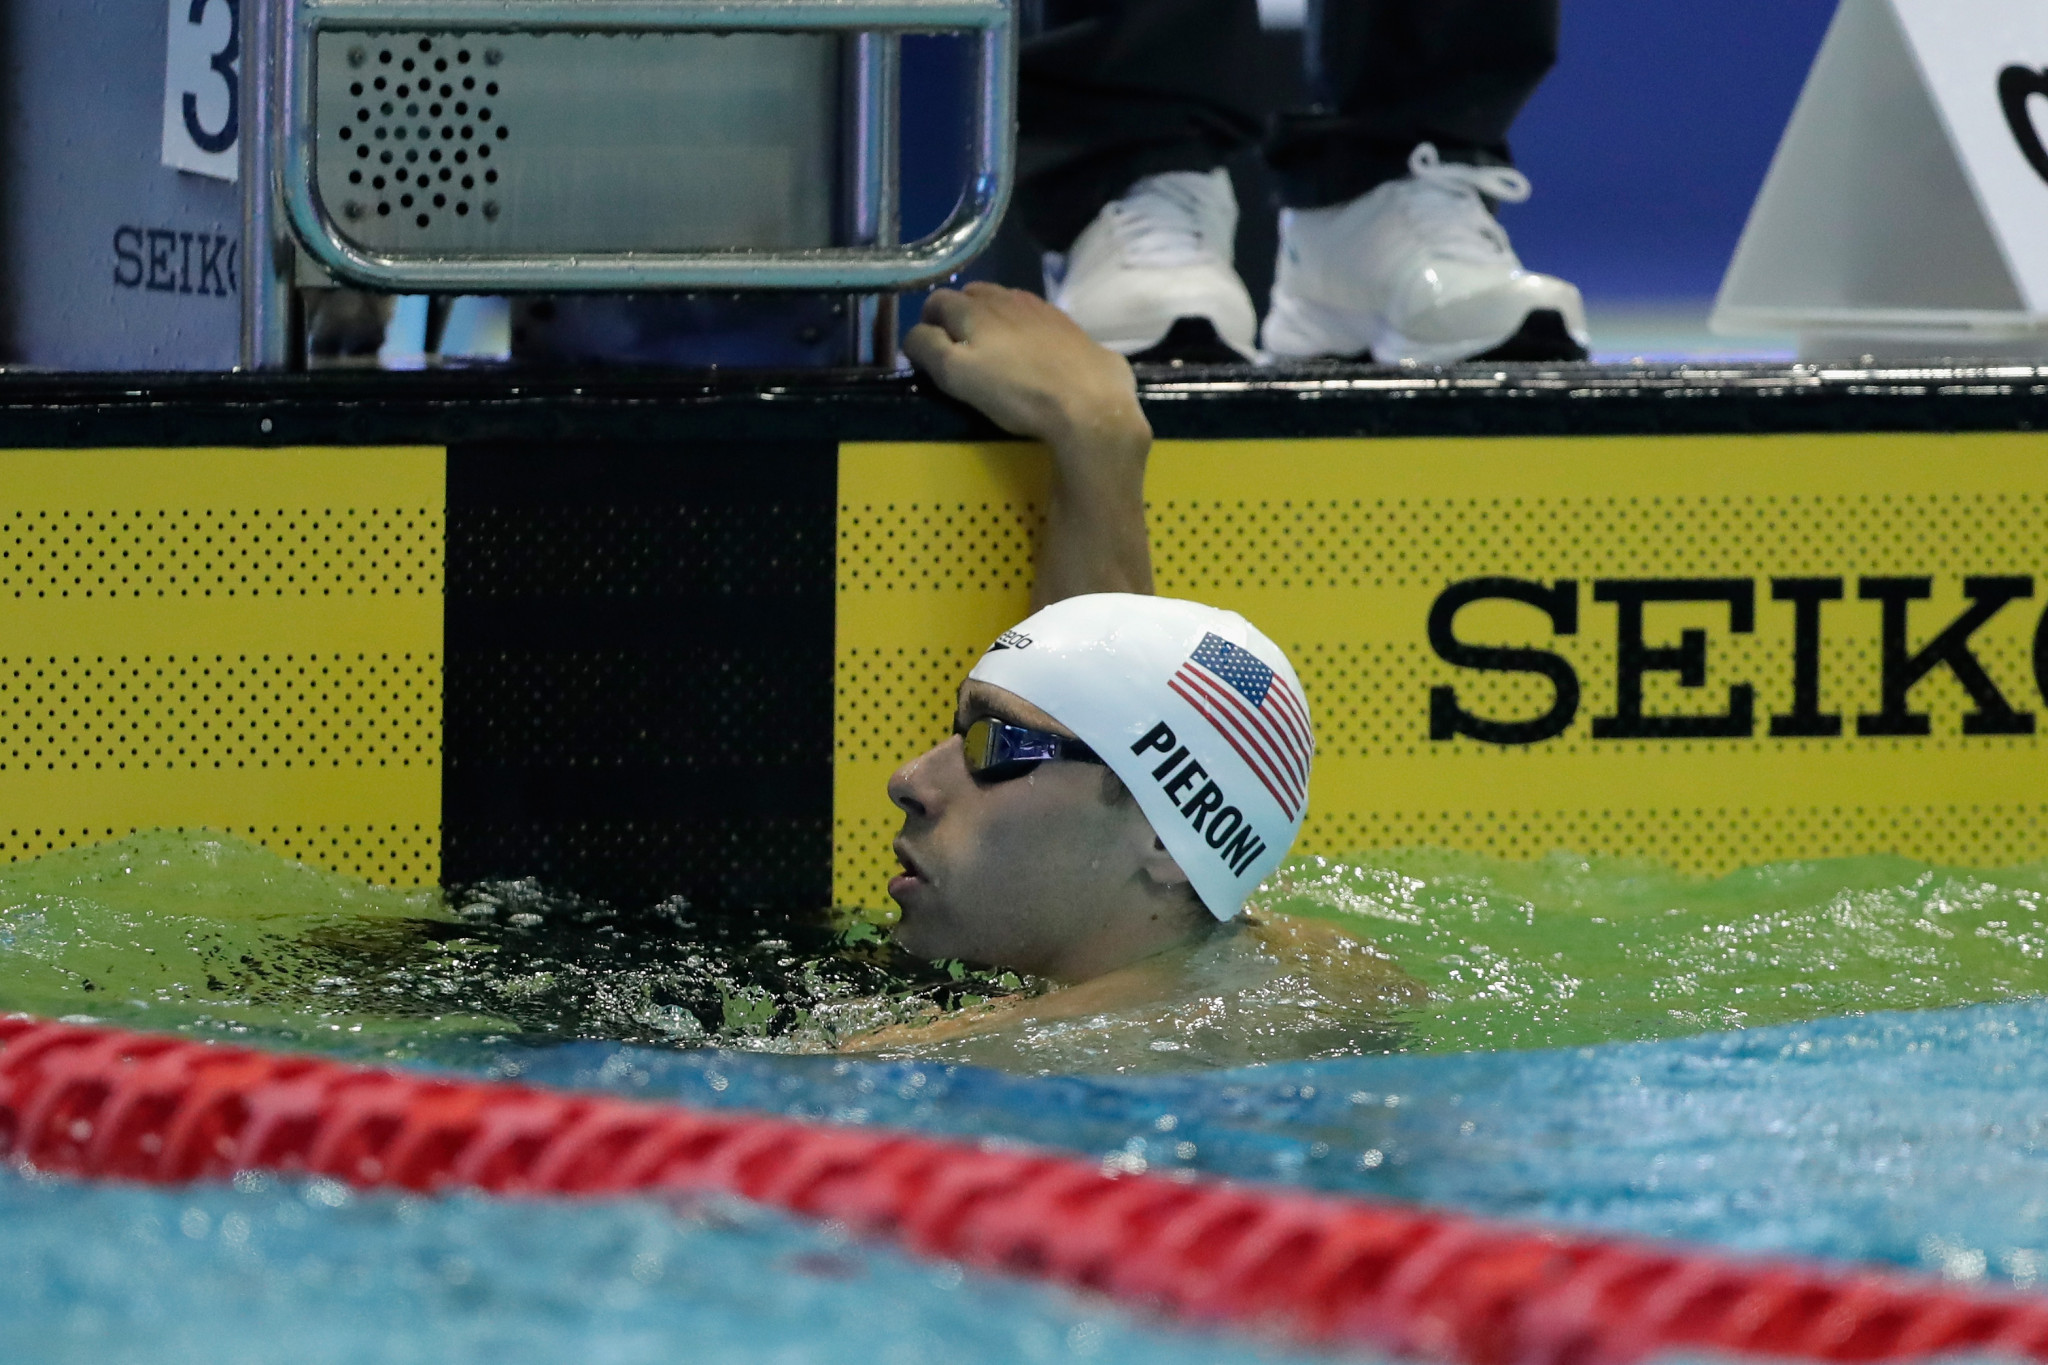 Blake Pieroni from the US set a new World Cup record in the men's 100m freestyle